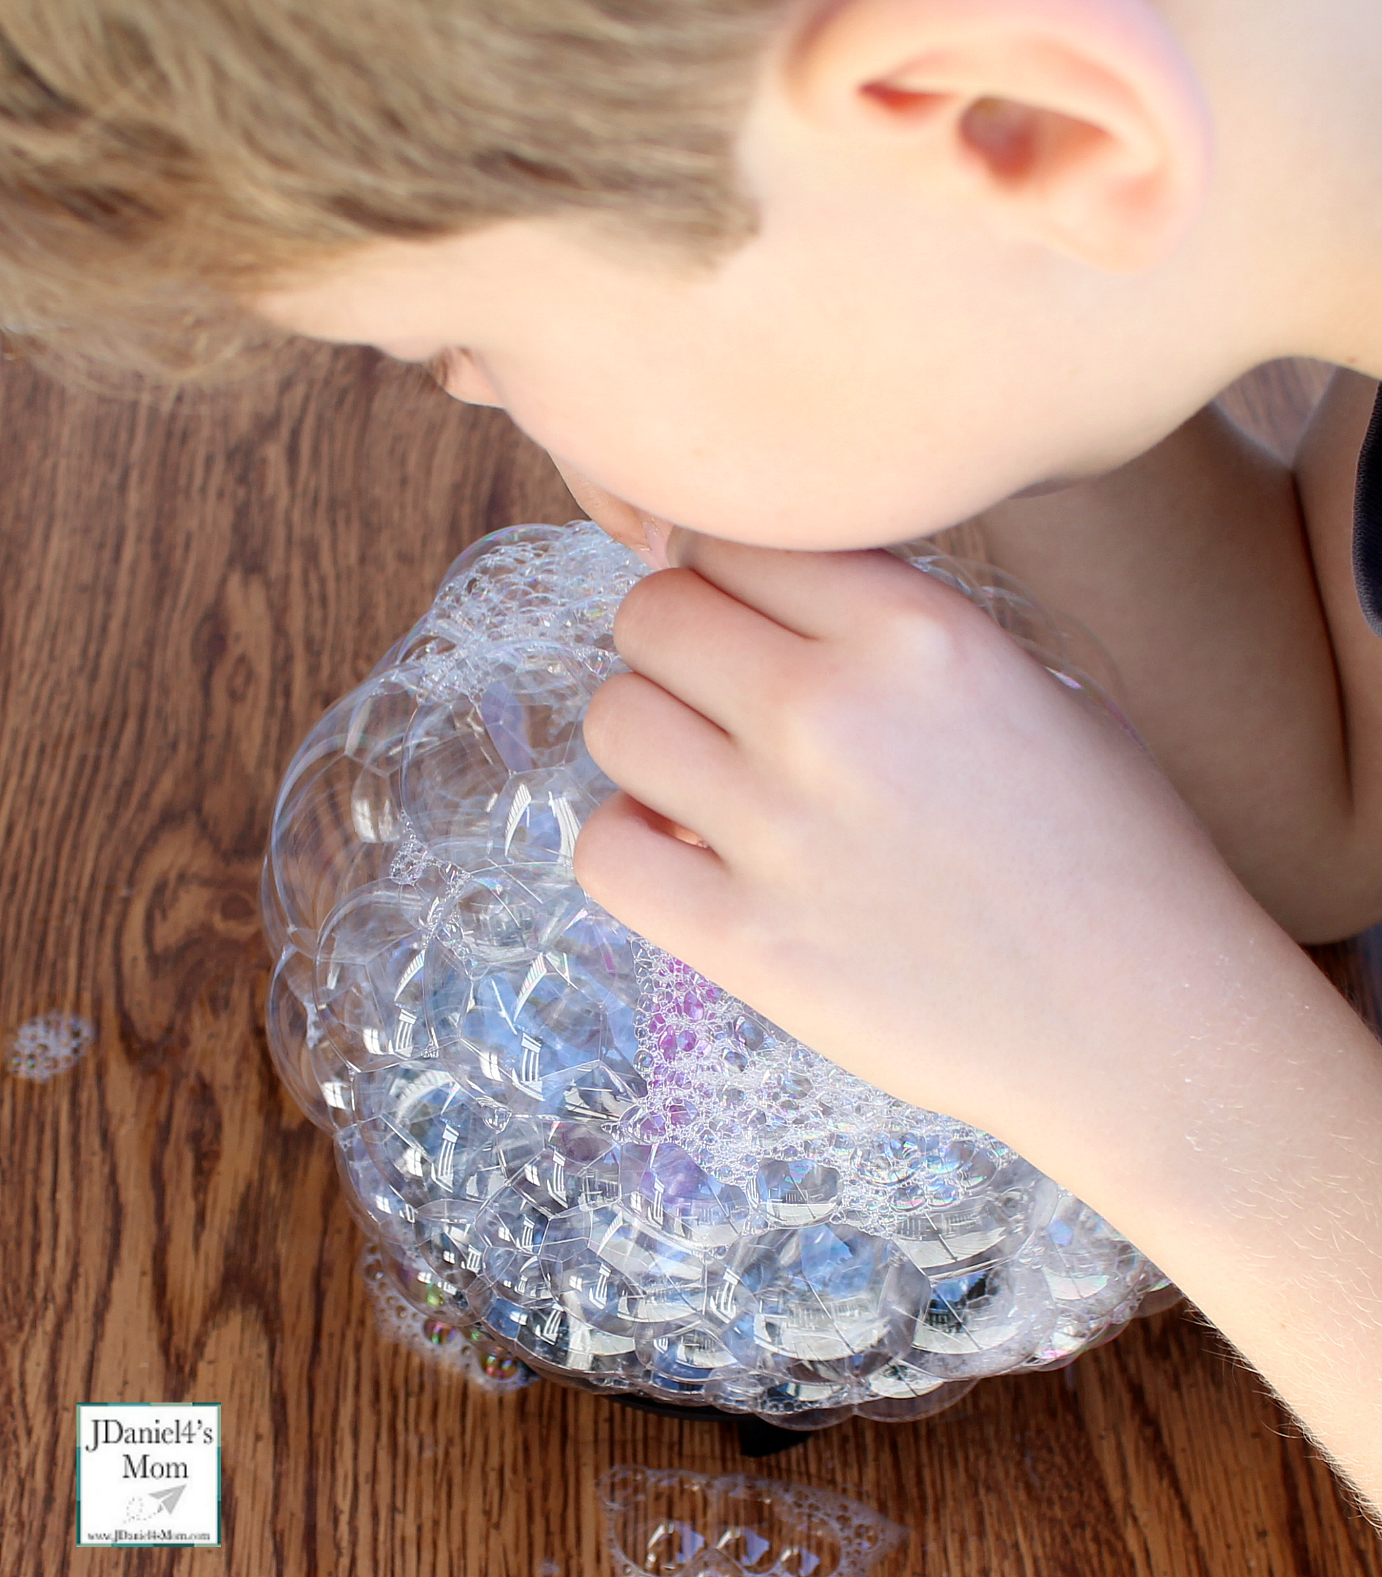 Bubble Games and Activities- This card said blow into the liquid.